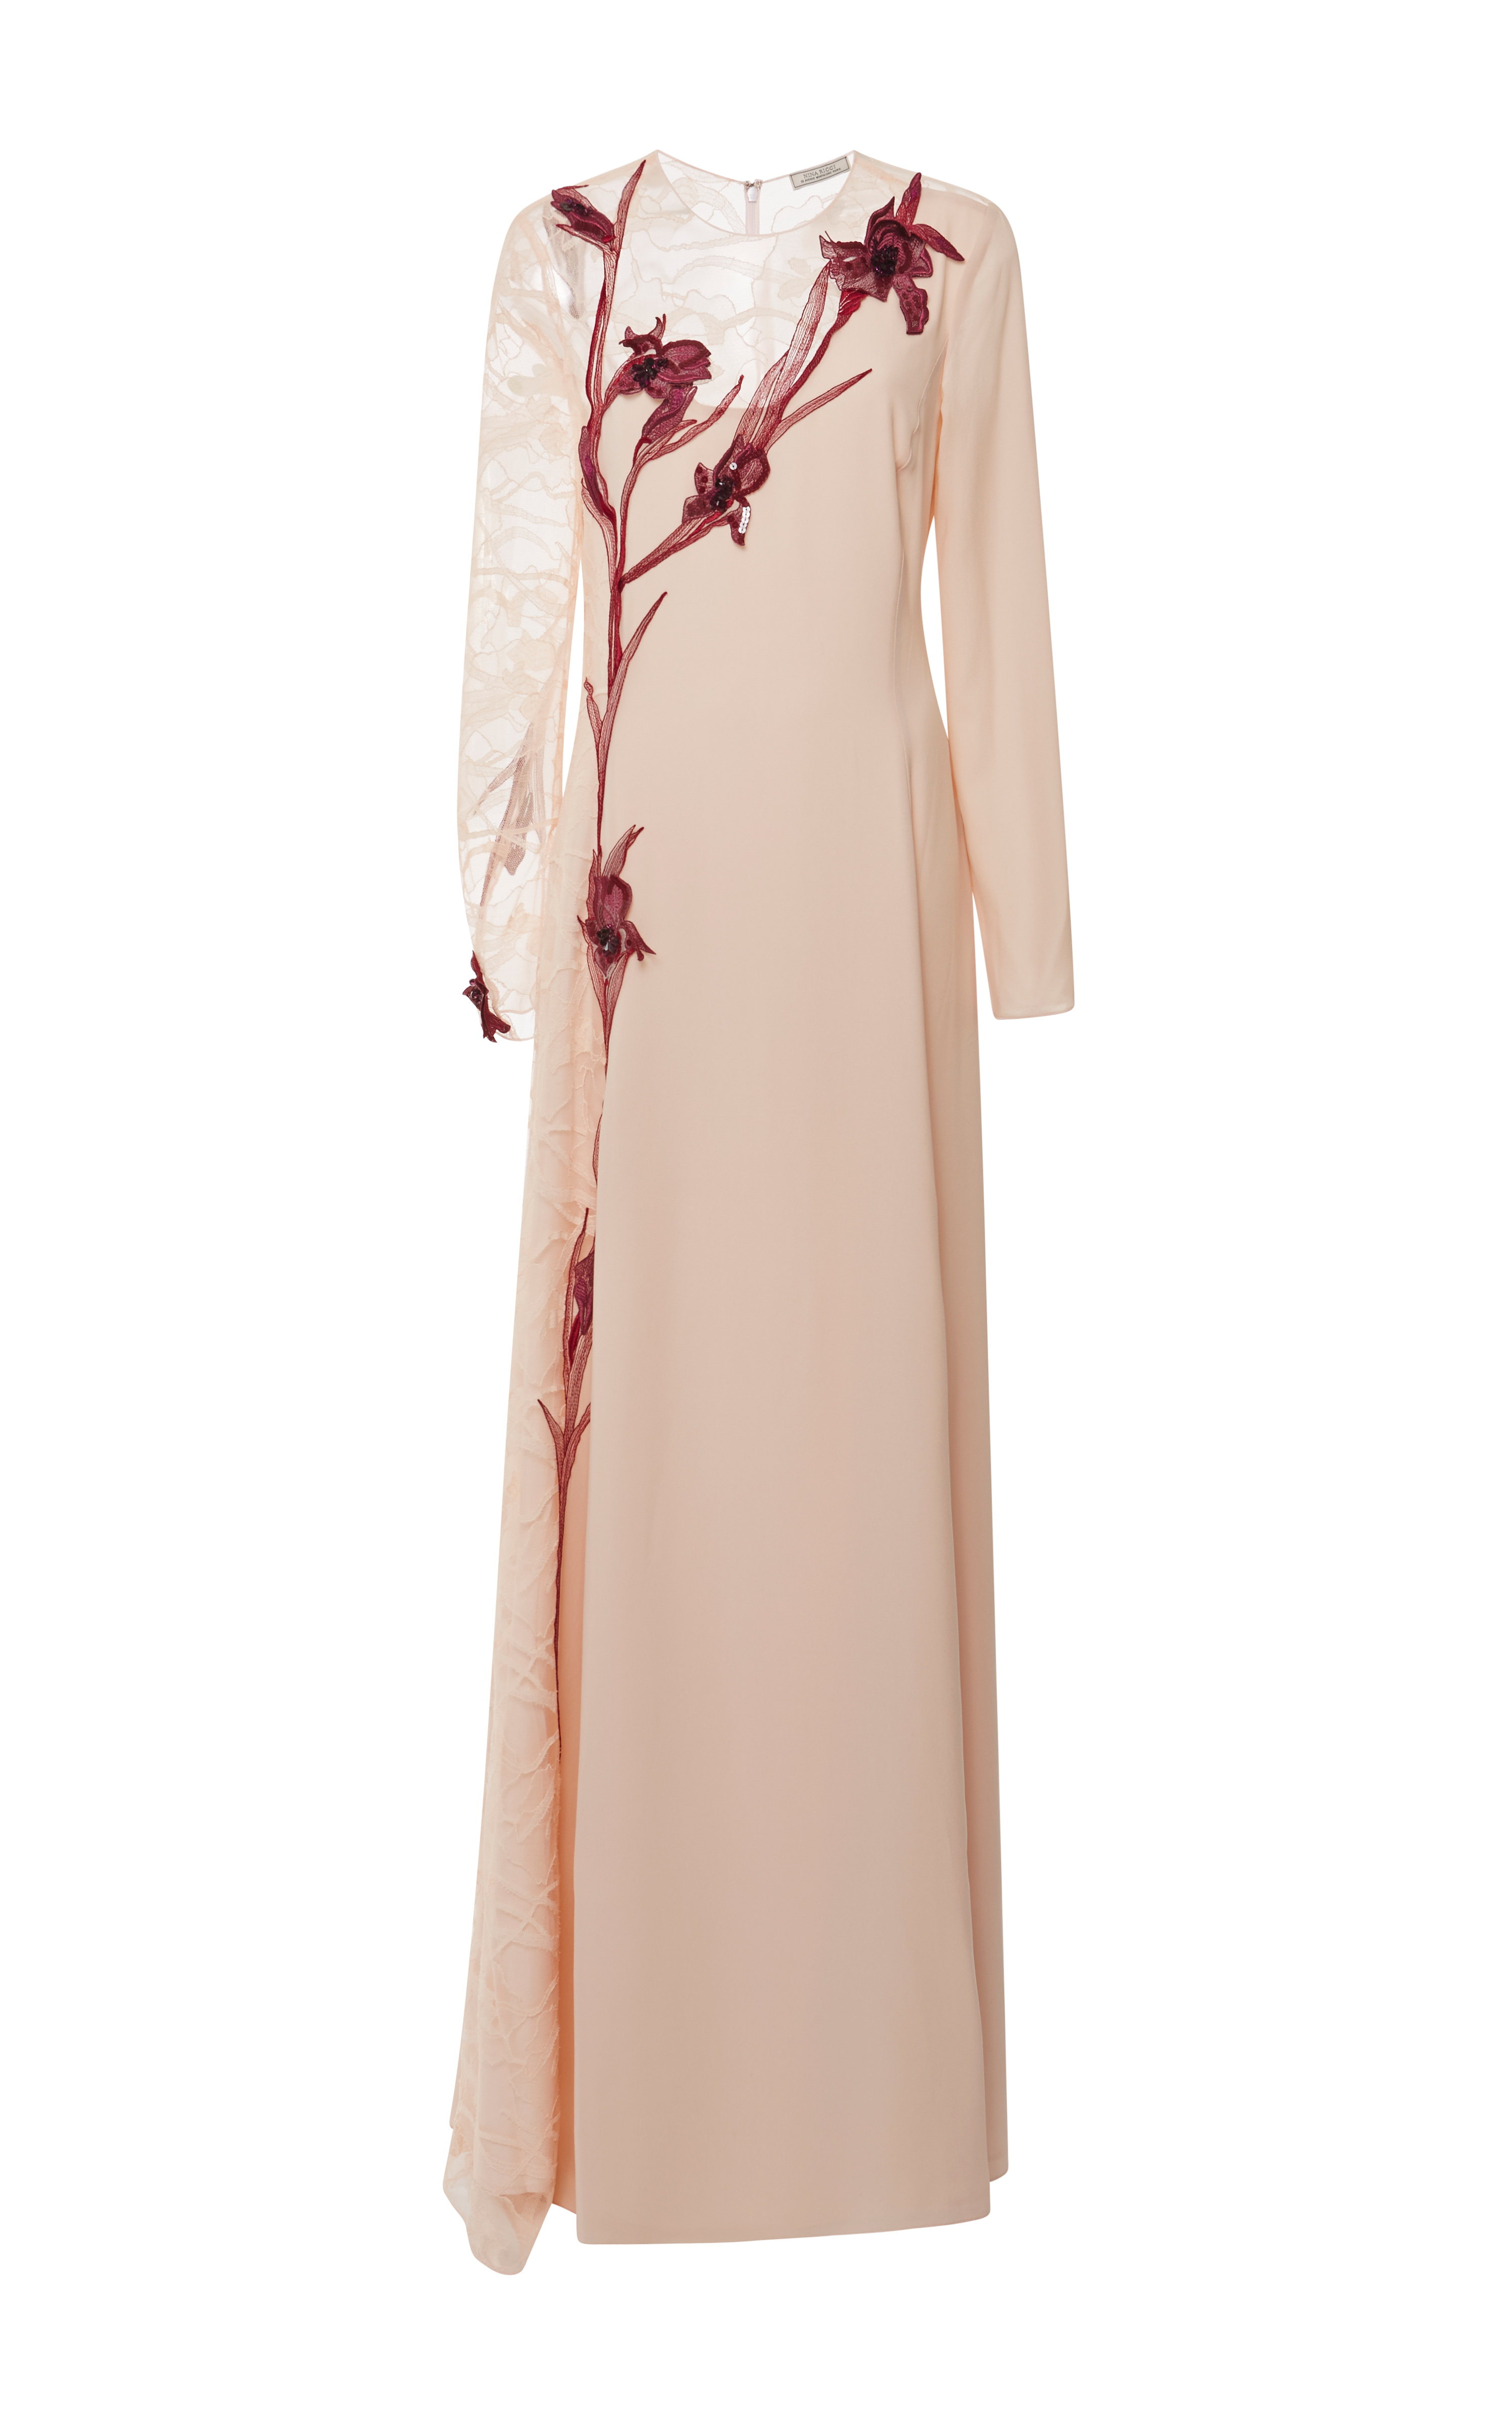 Lyst - Nina ricci Embroidered Lace And Silk-Crepe Gown in Natural